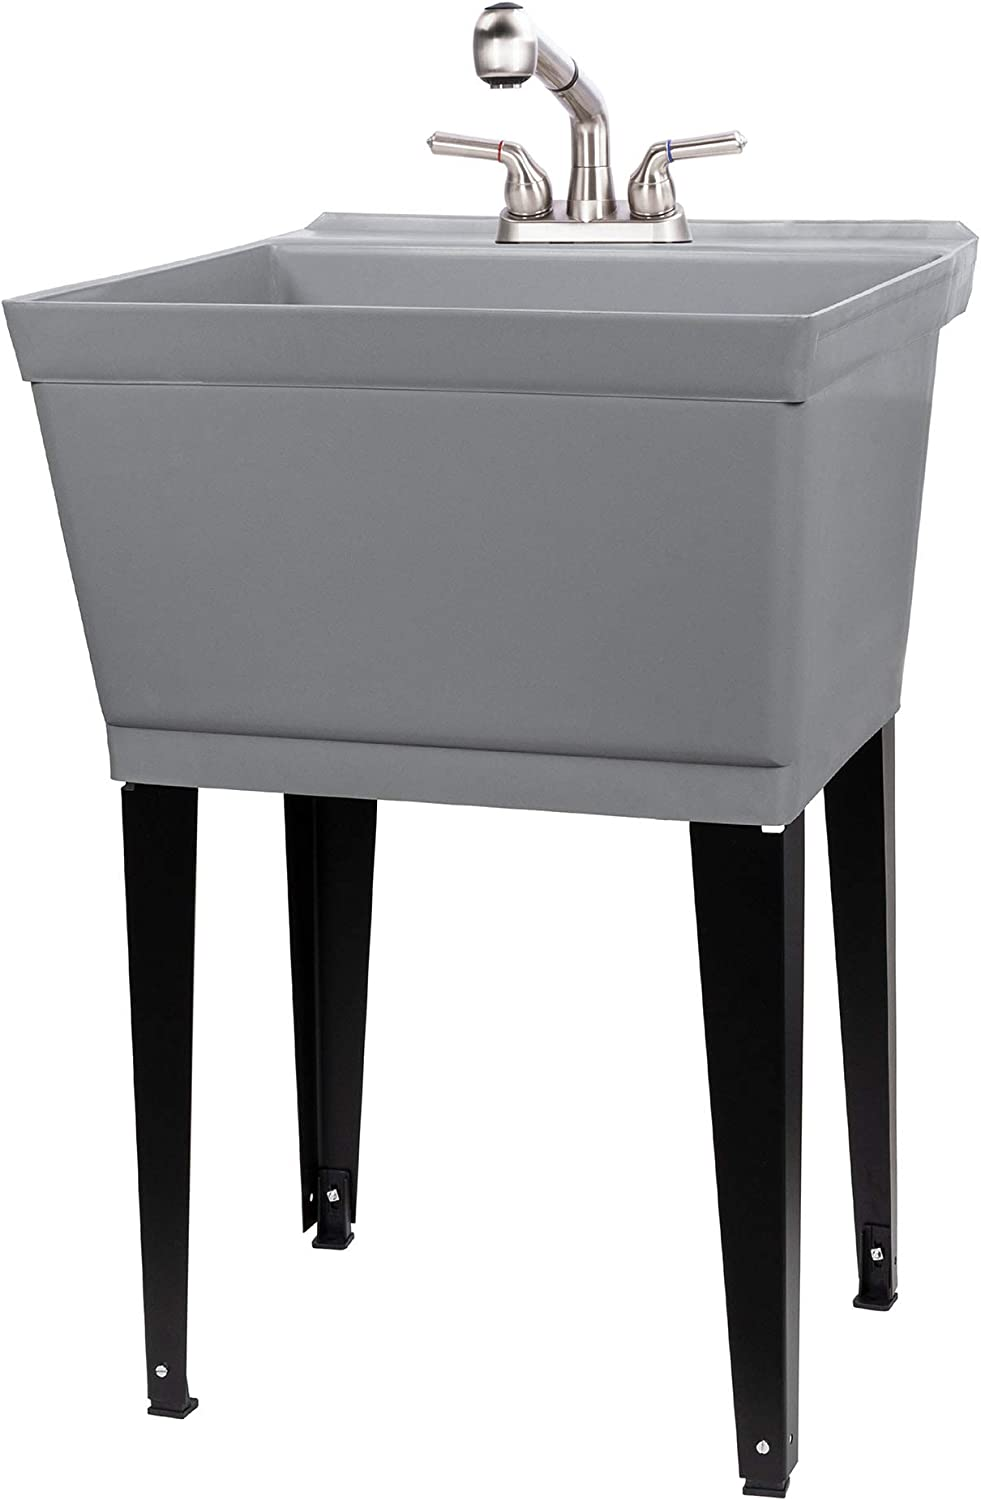 Grey Utility Sink Laundry Tub With Pull Out Stainless Steel Faucet, Sprayer Spout, Heavy Duty Slop Sinks For Washing Room, Basement, Garage or Shop, Large Free Standing Wash Station Tubs and Drainage